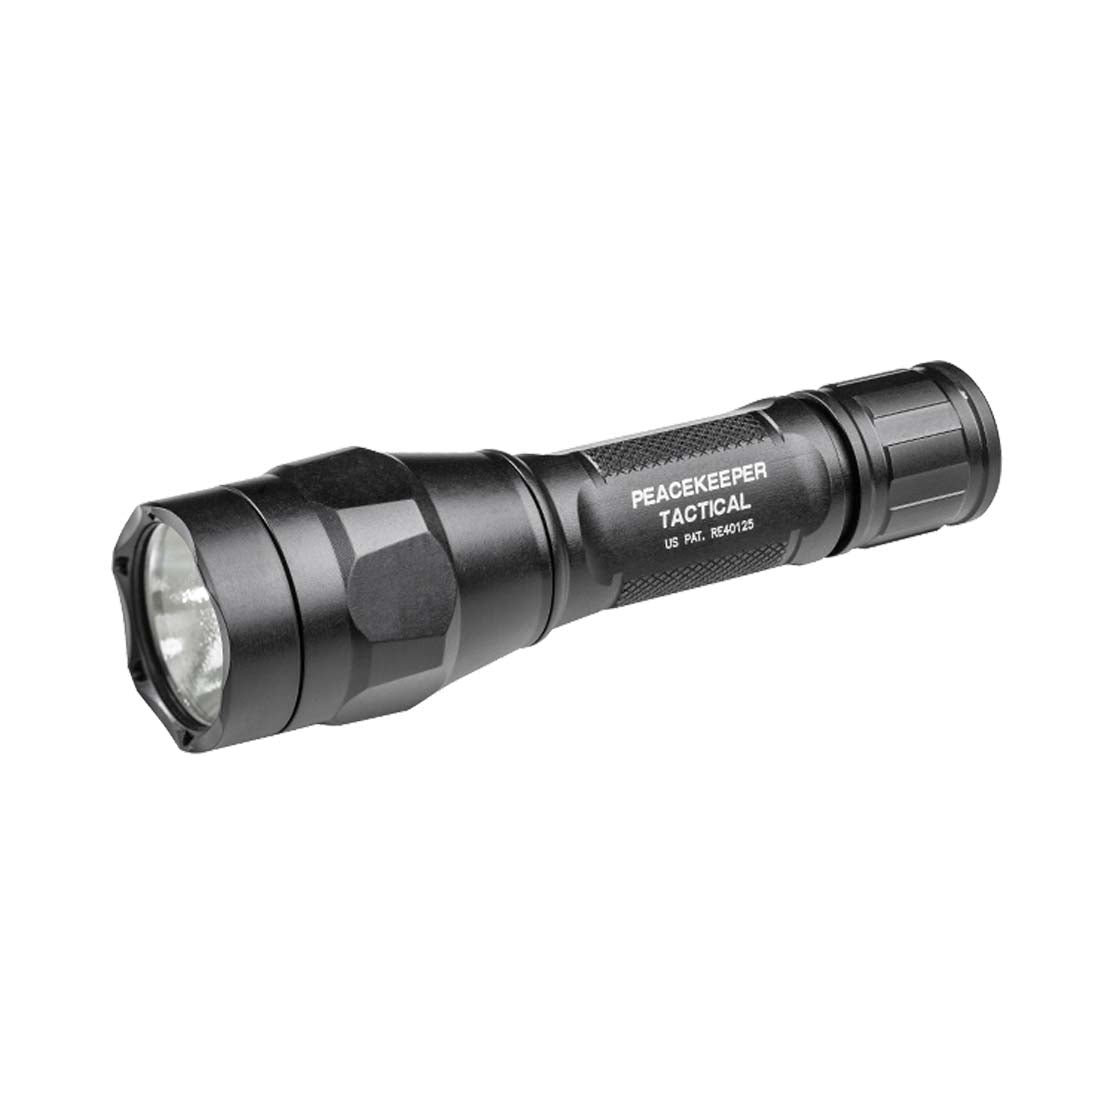 Surefire P1R Peacekeeper Tactical Rechargeable Ultra High Single Output Led Flashlight